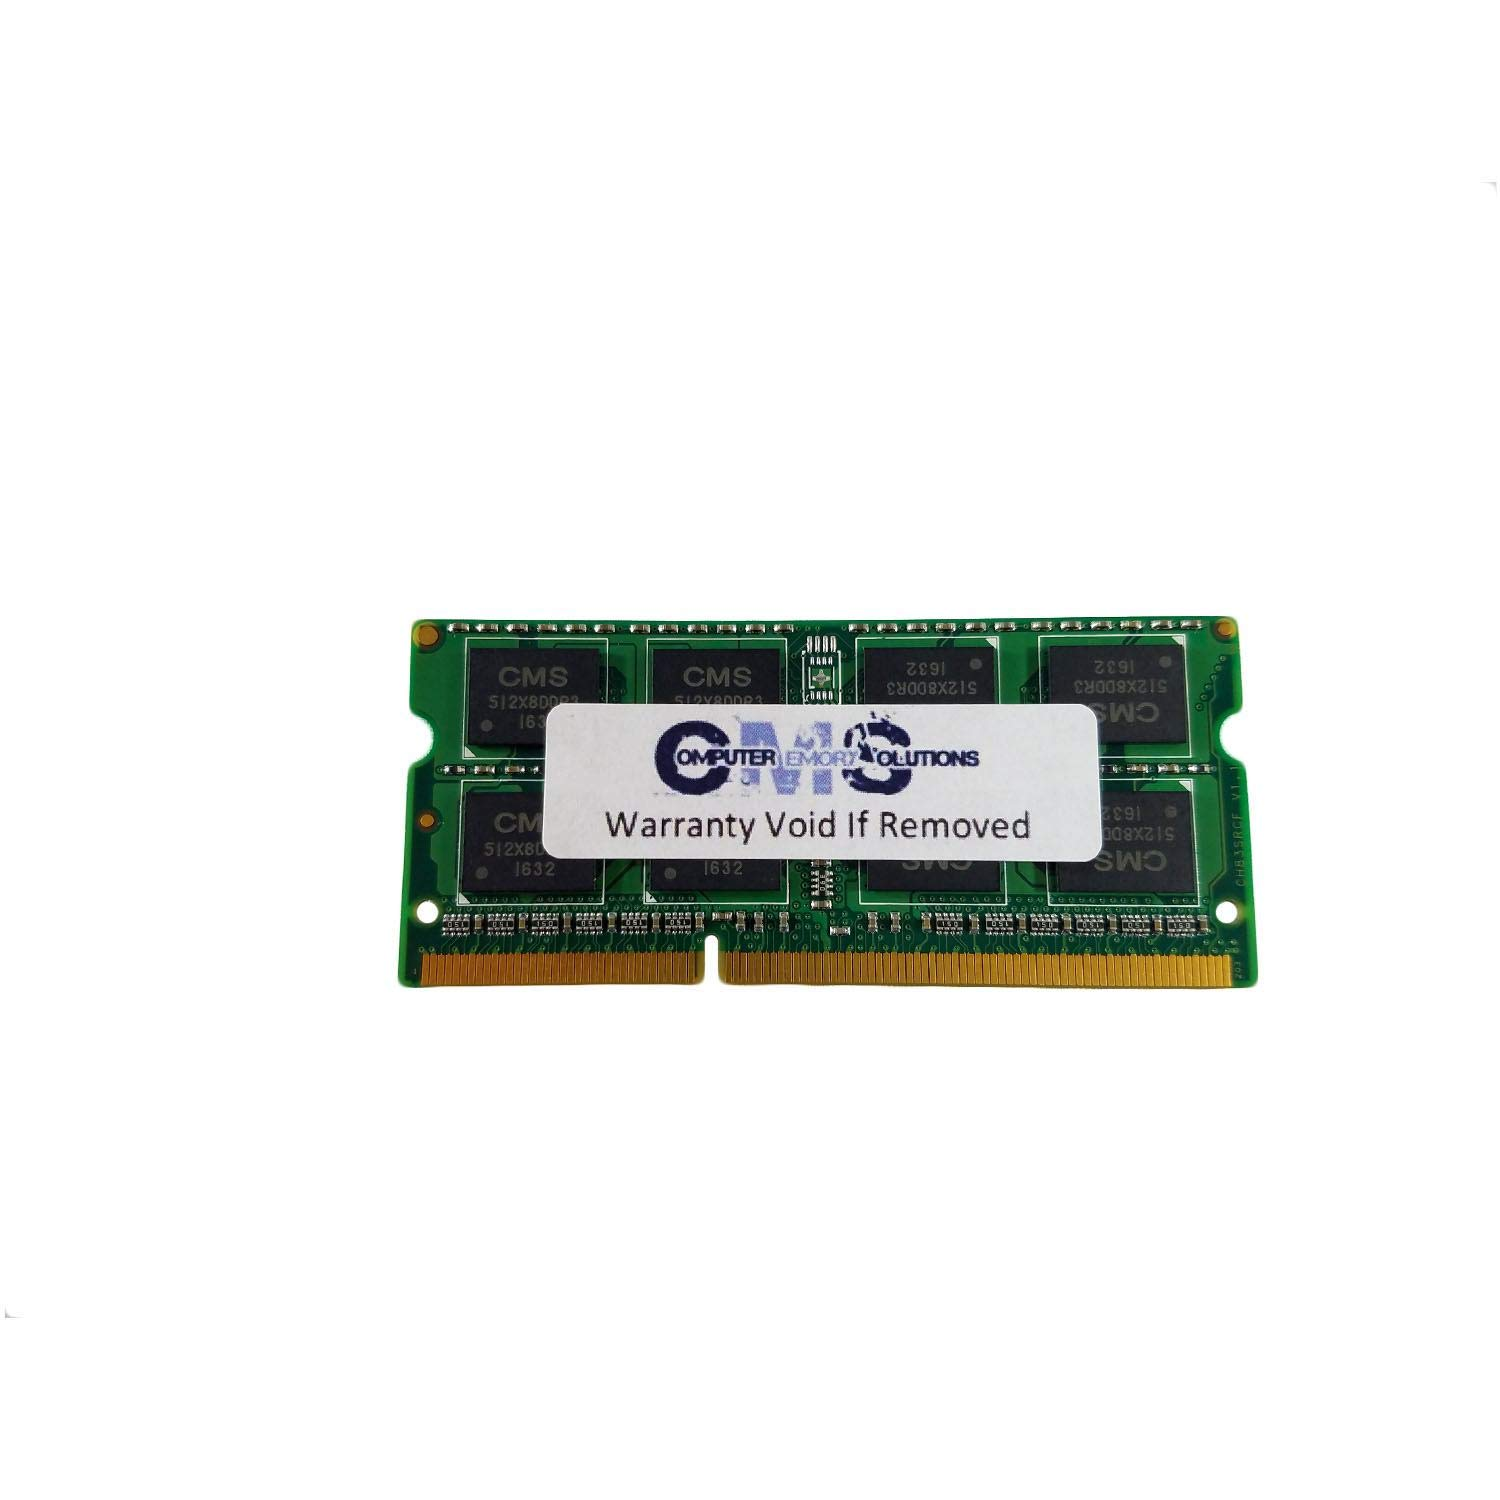 8Gb (1X8Gb) Memory Ram Compatible with Hp/Compaq Elitebook 840 G1 By CMS Brand A8